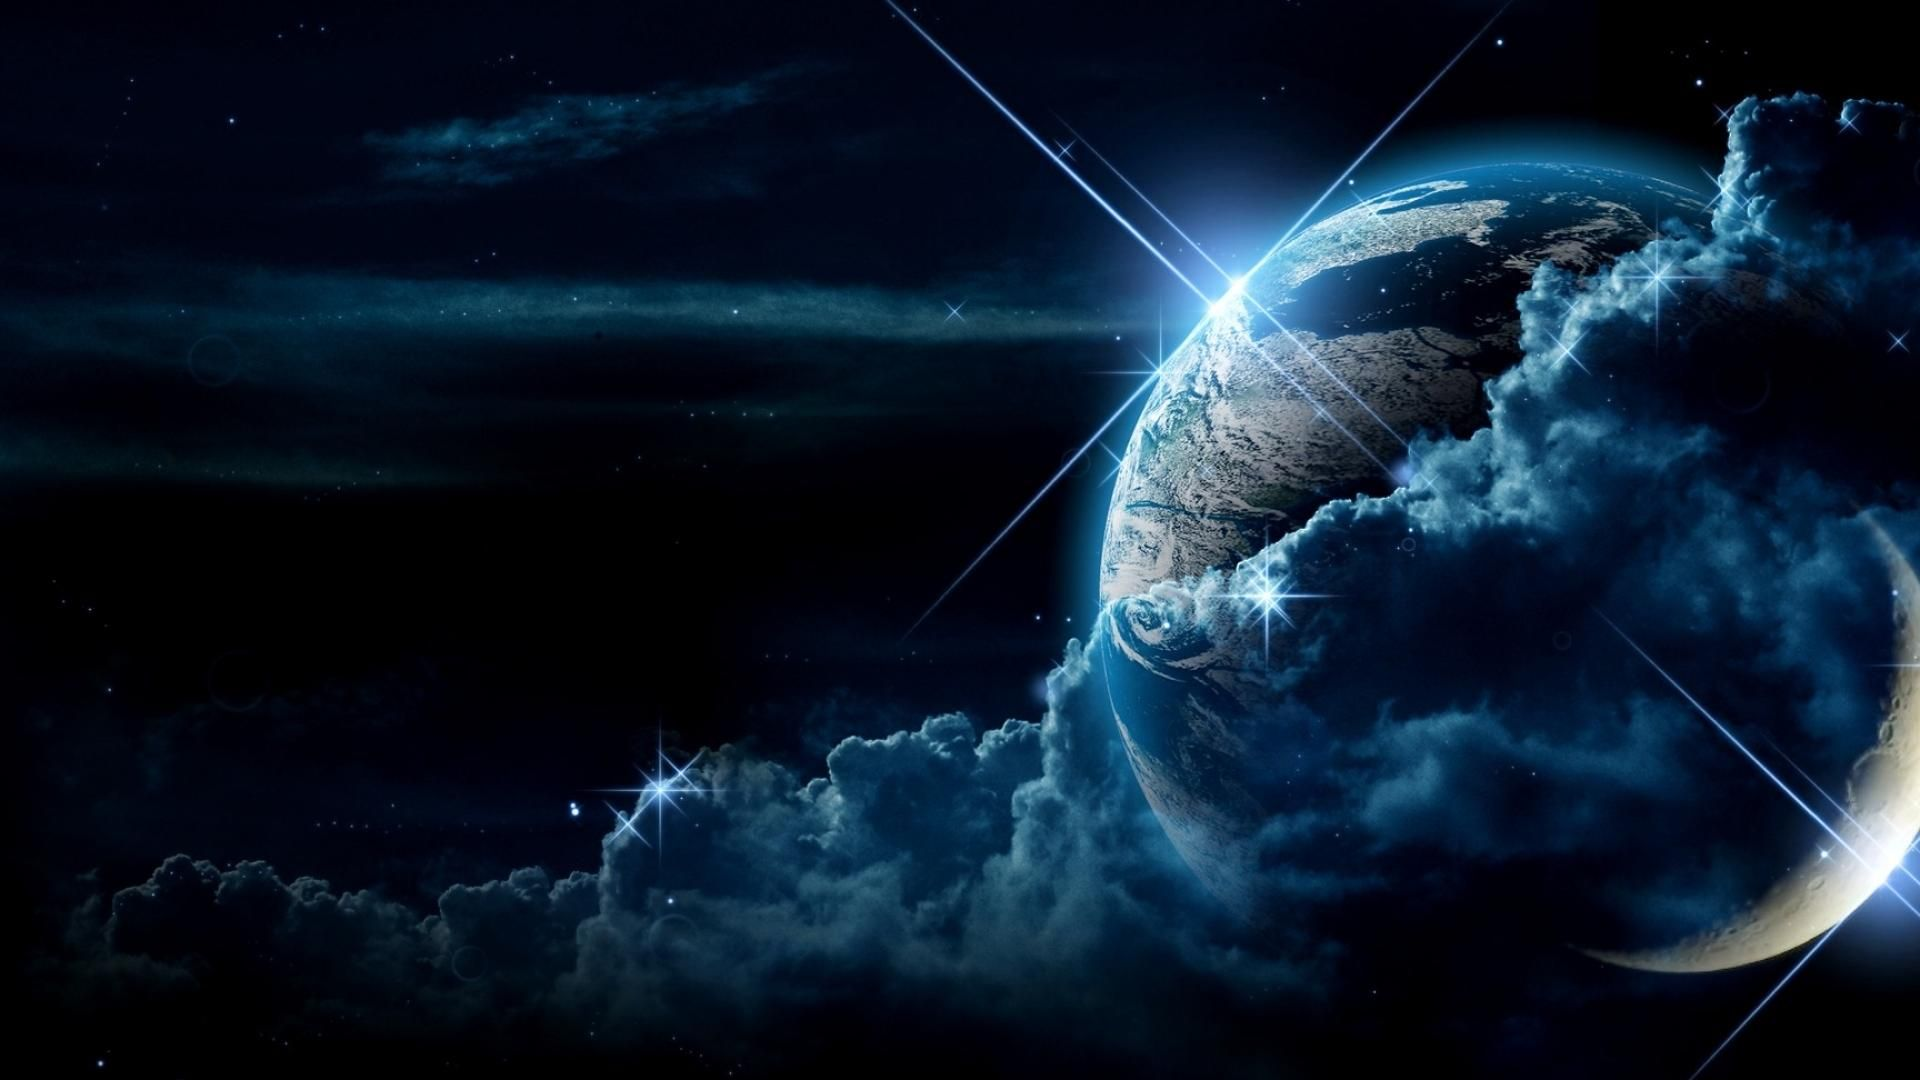 Real Space Wallpaper Background Download Earth From Space Wallpaper Space Space Backgrounds